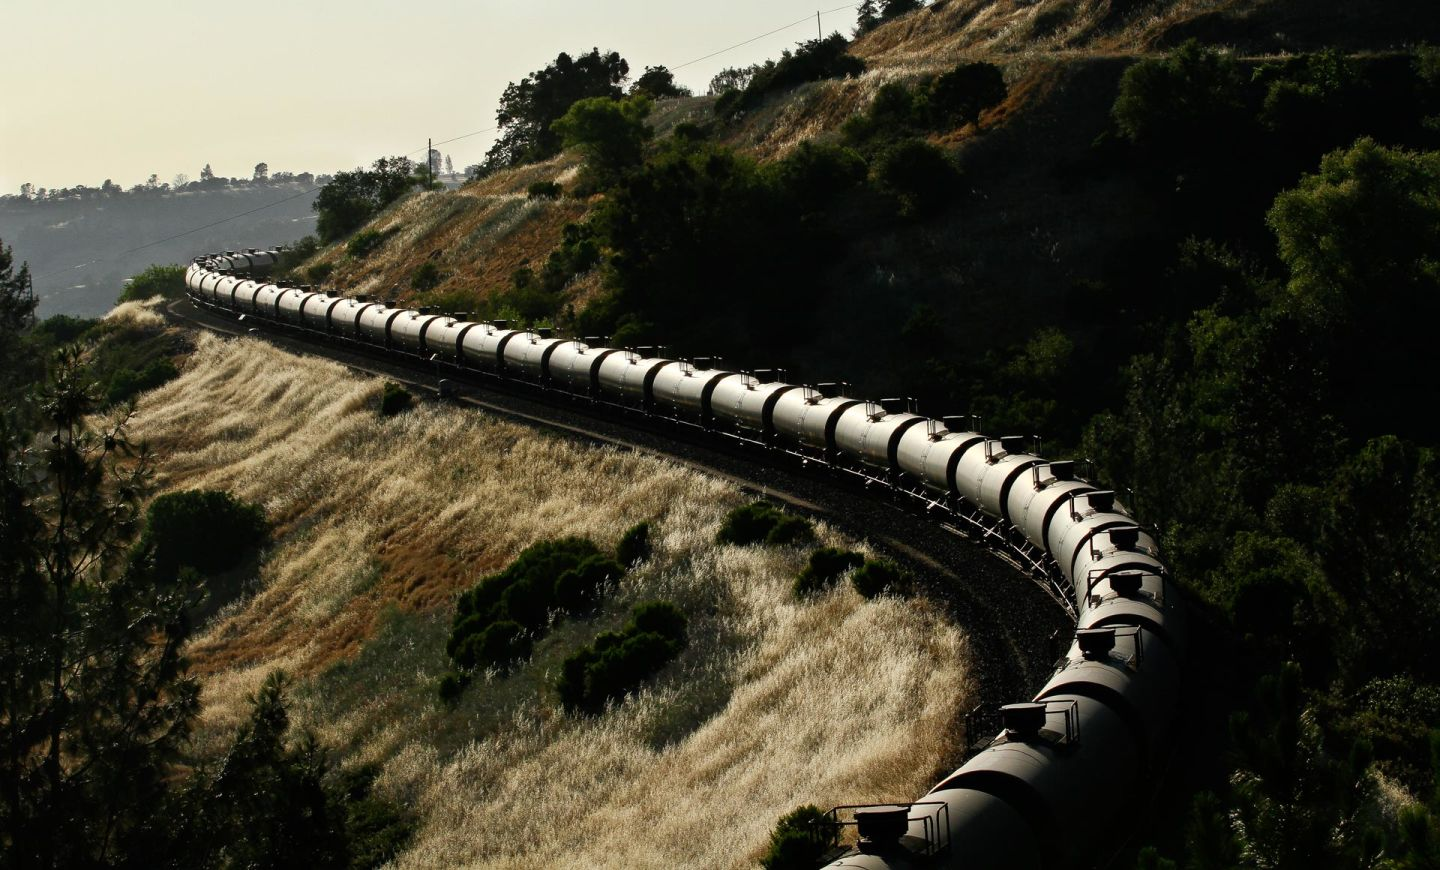 A train carrying crude oil operated by BNSF railway in California. Jake Miille/Jake Miille Photography